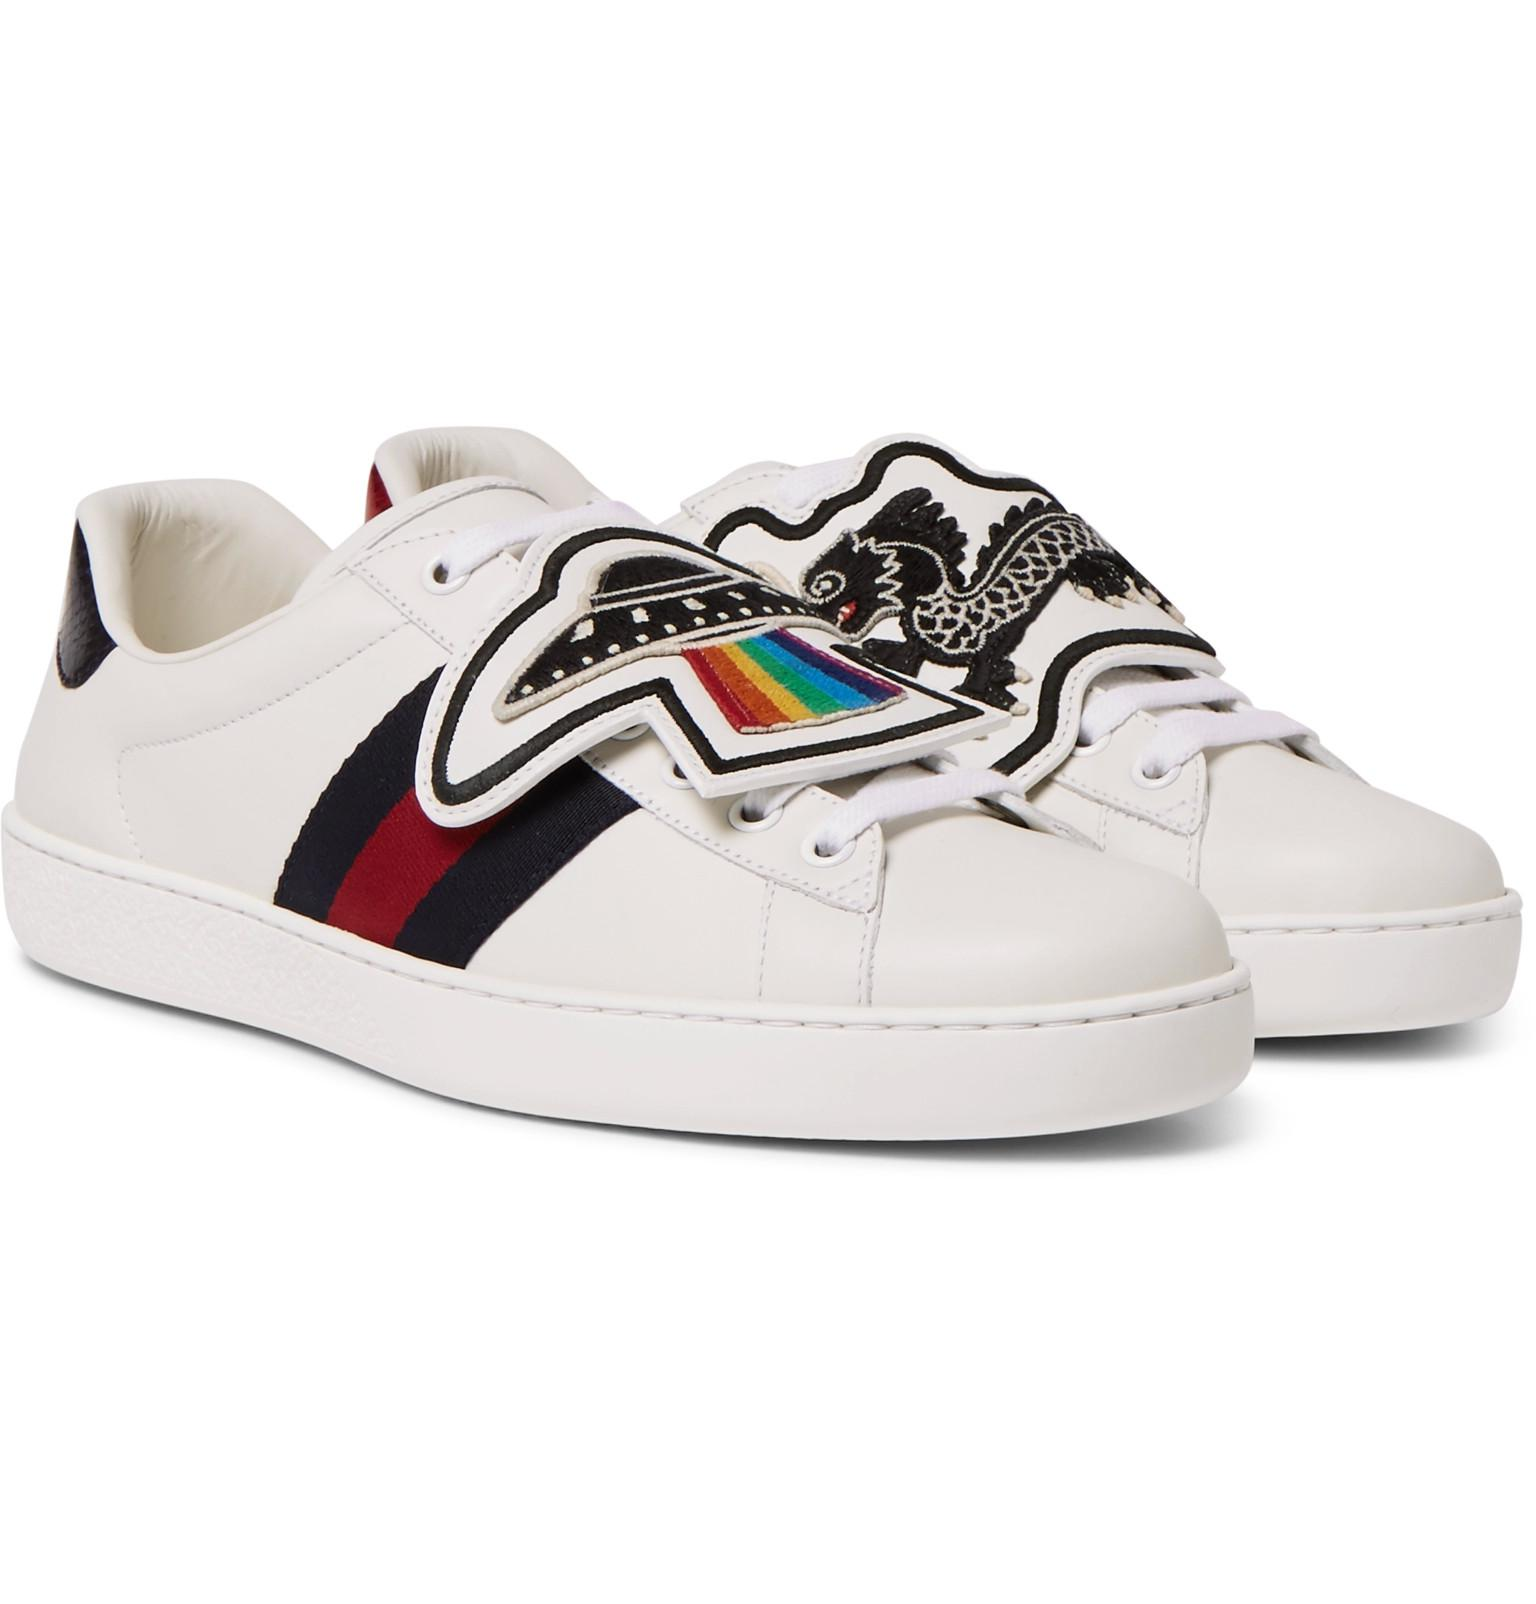 0e5a348666a Gucci Ace Watersnake-trimmed Embellished Leather Sneakers in White ...